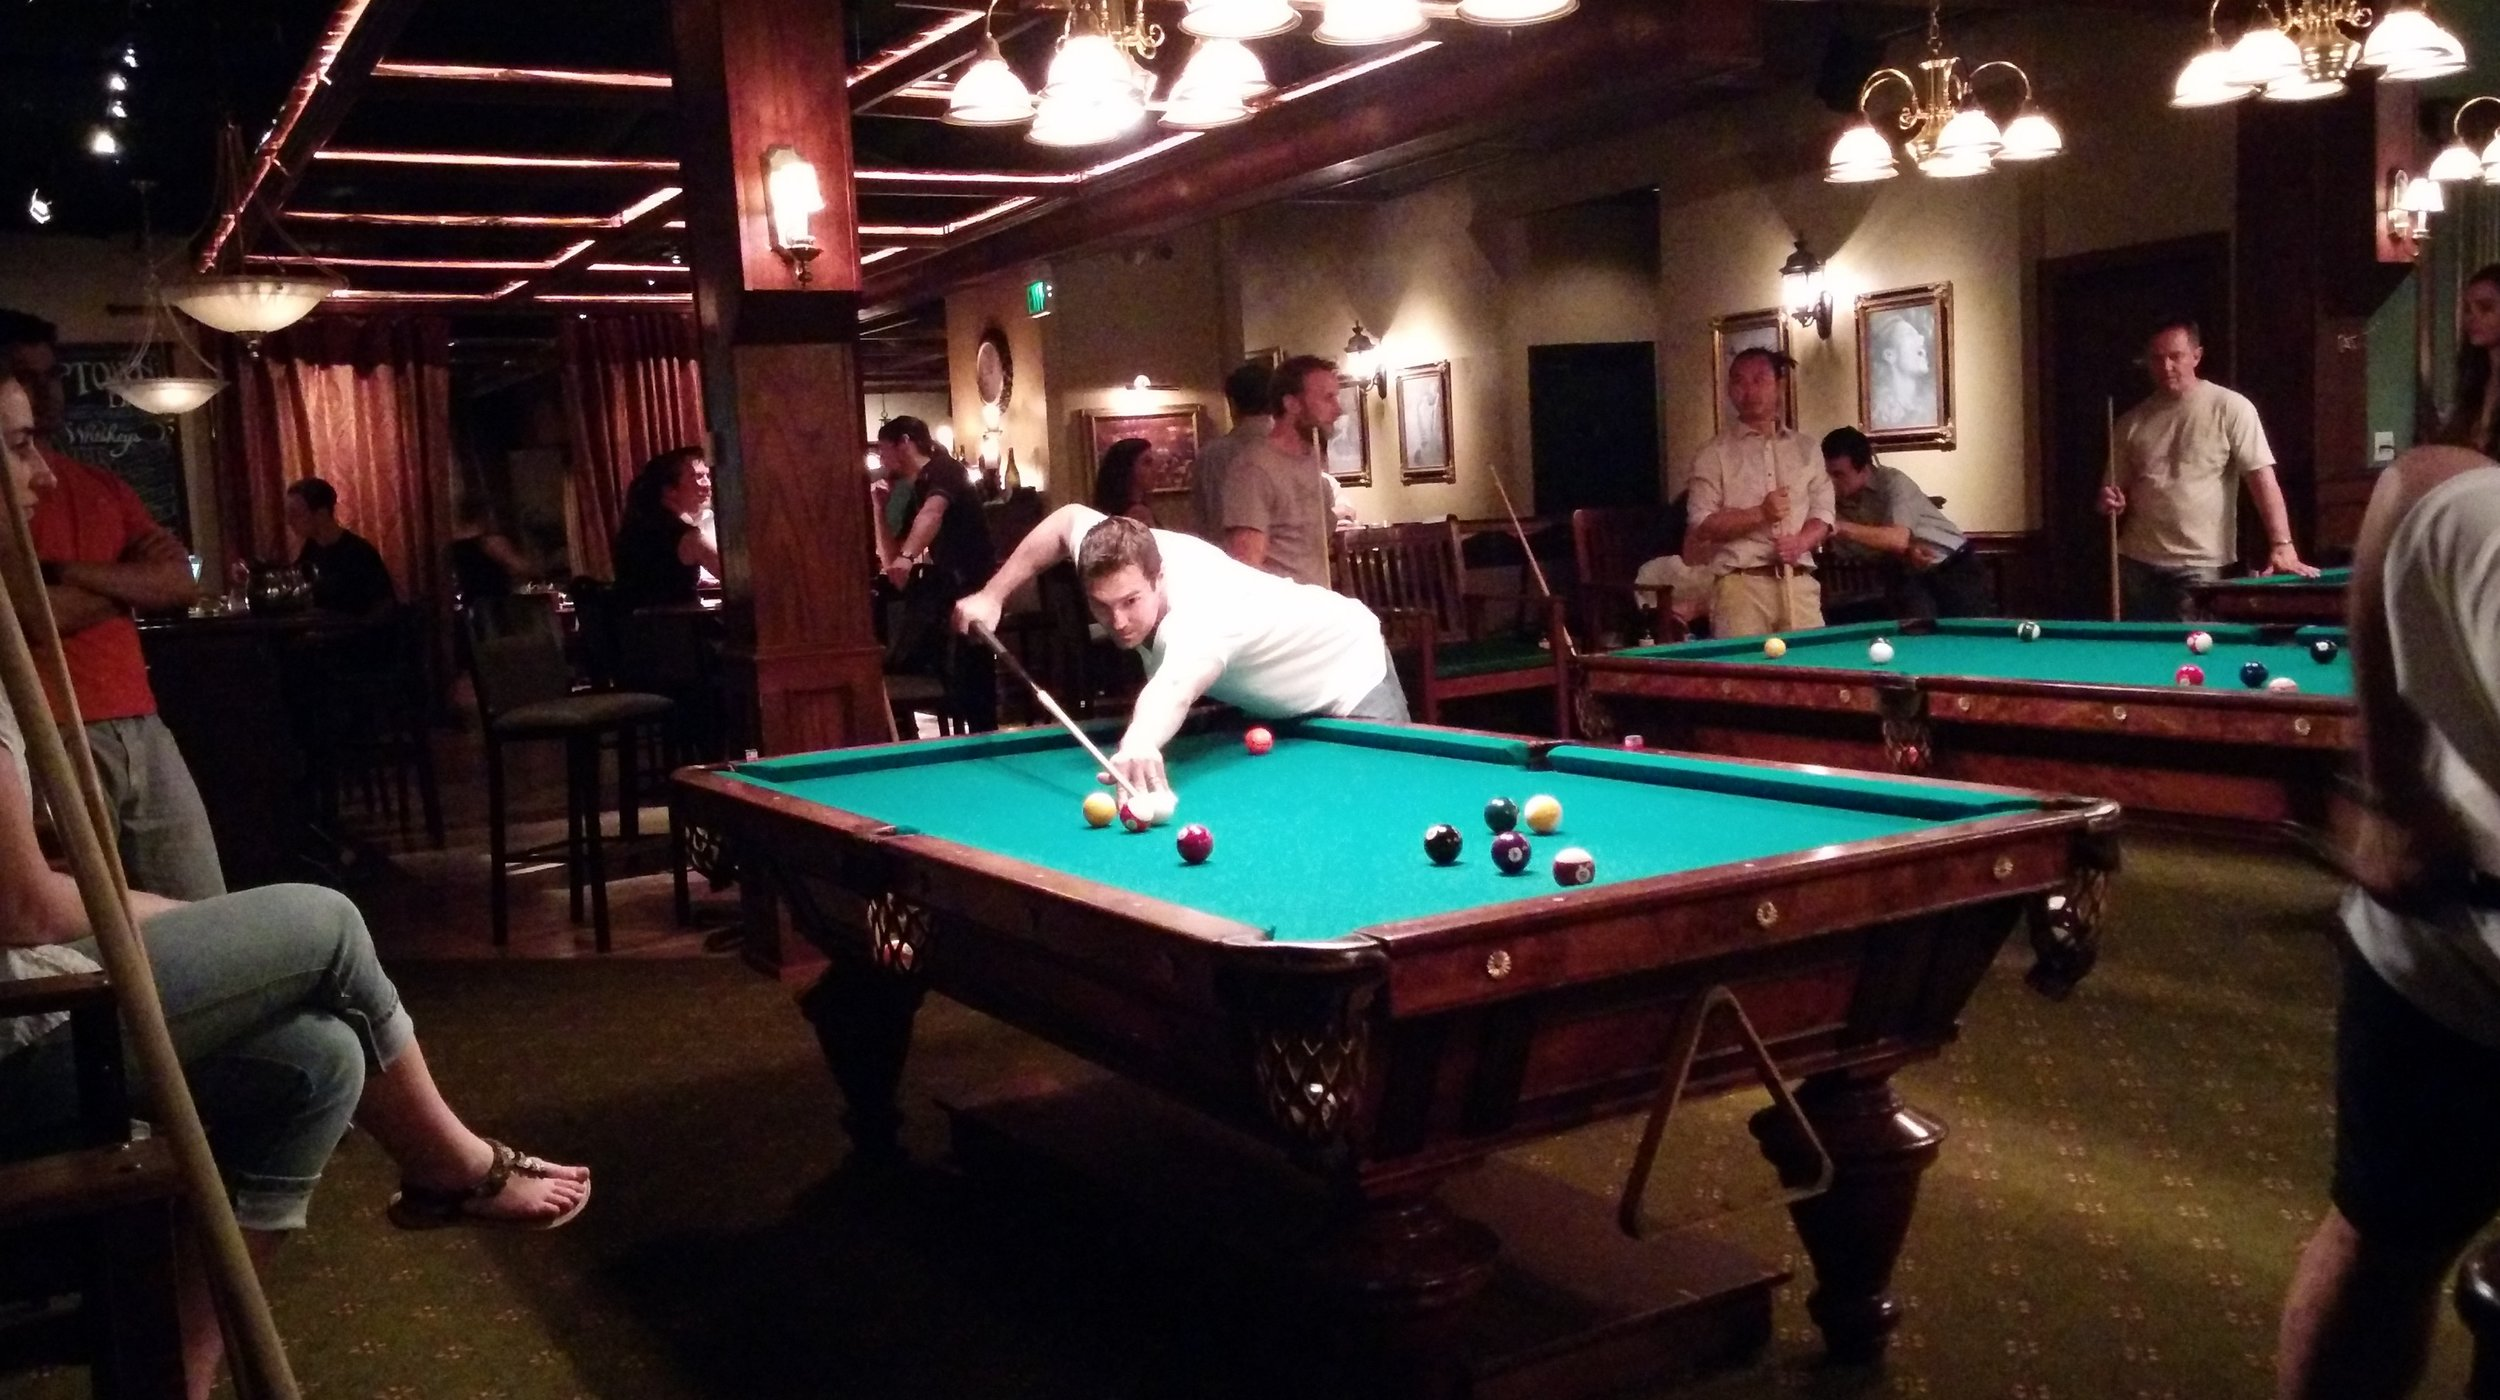 Uptown Billiards Club - How much room do you need for a pool table